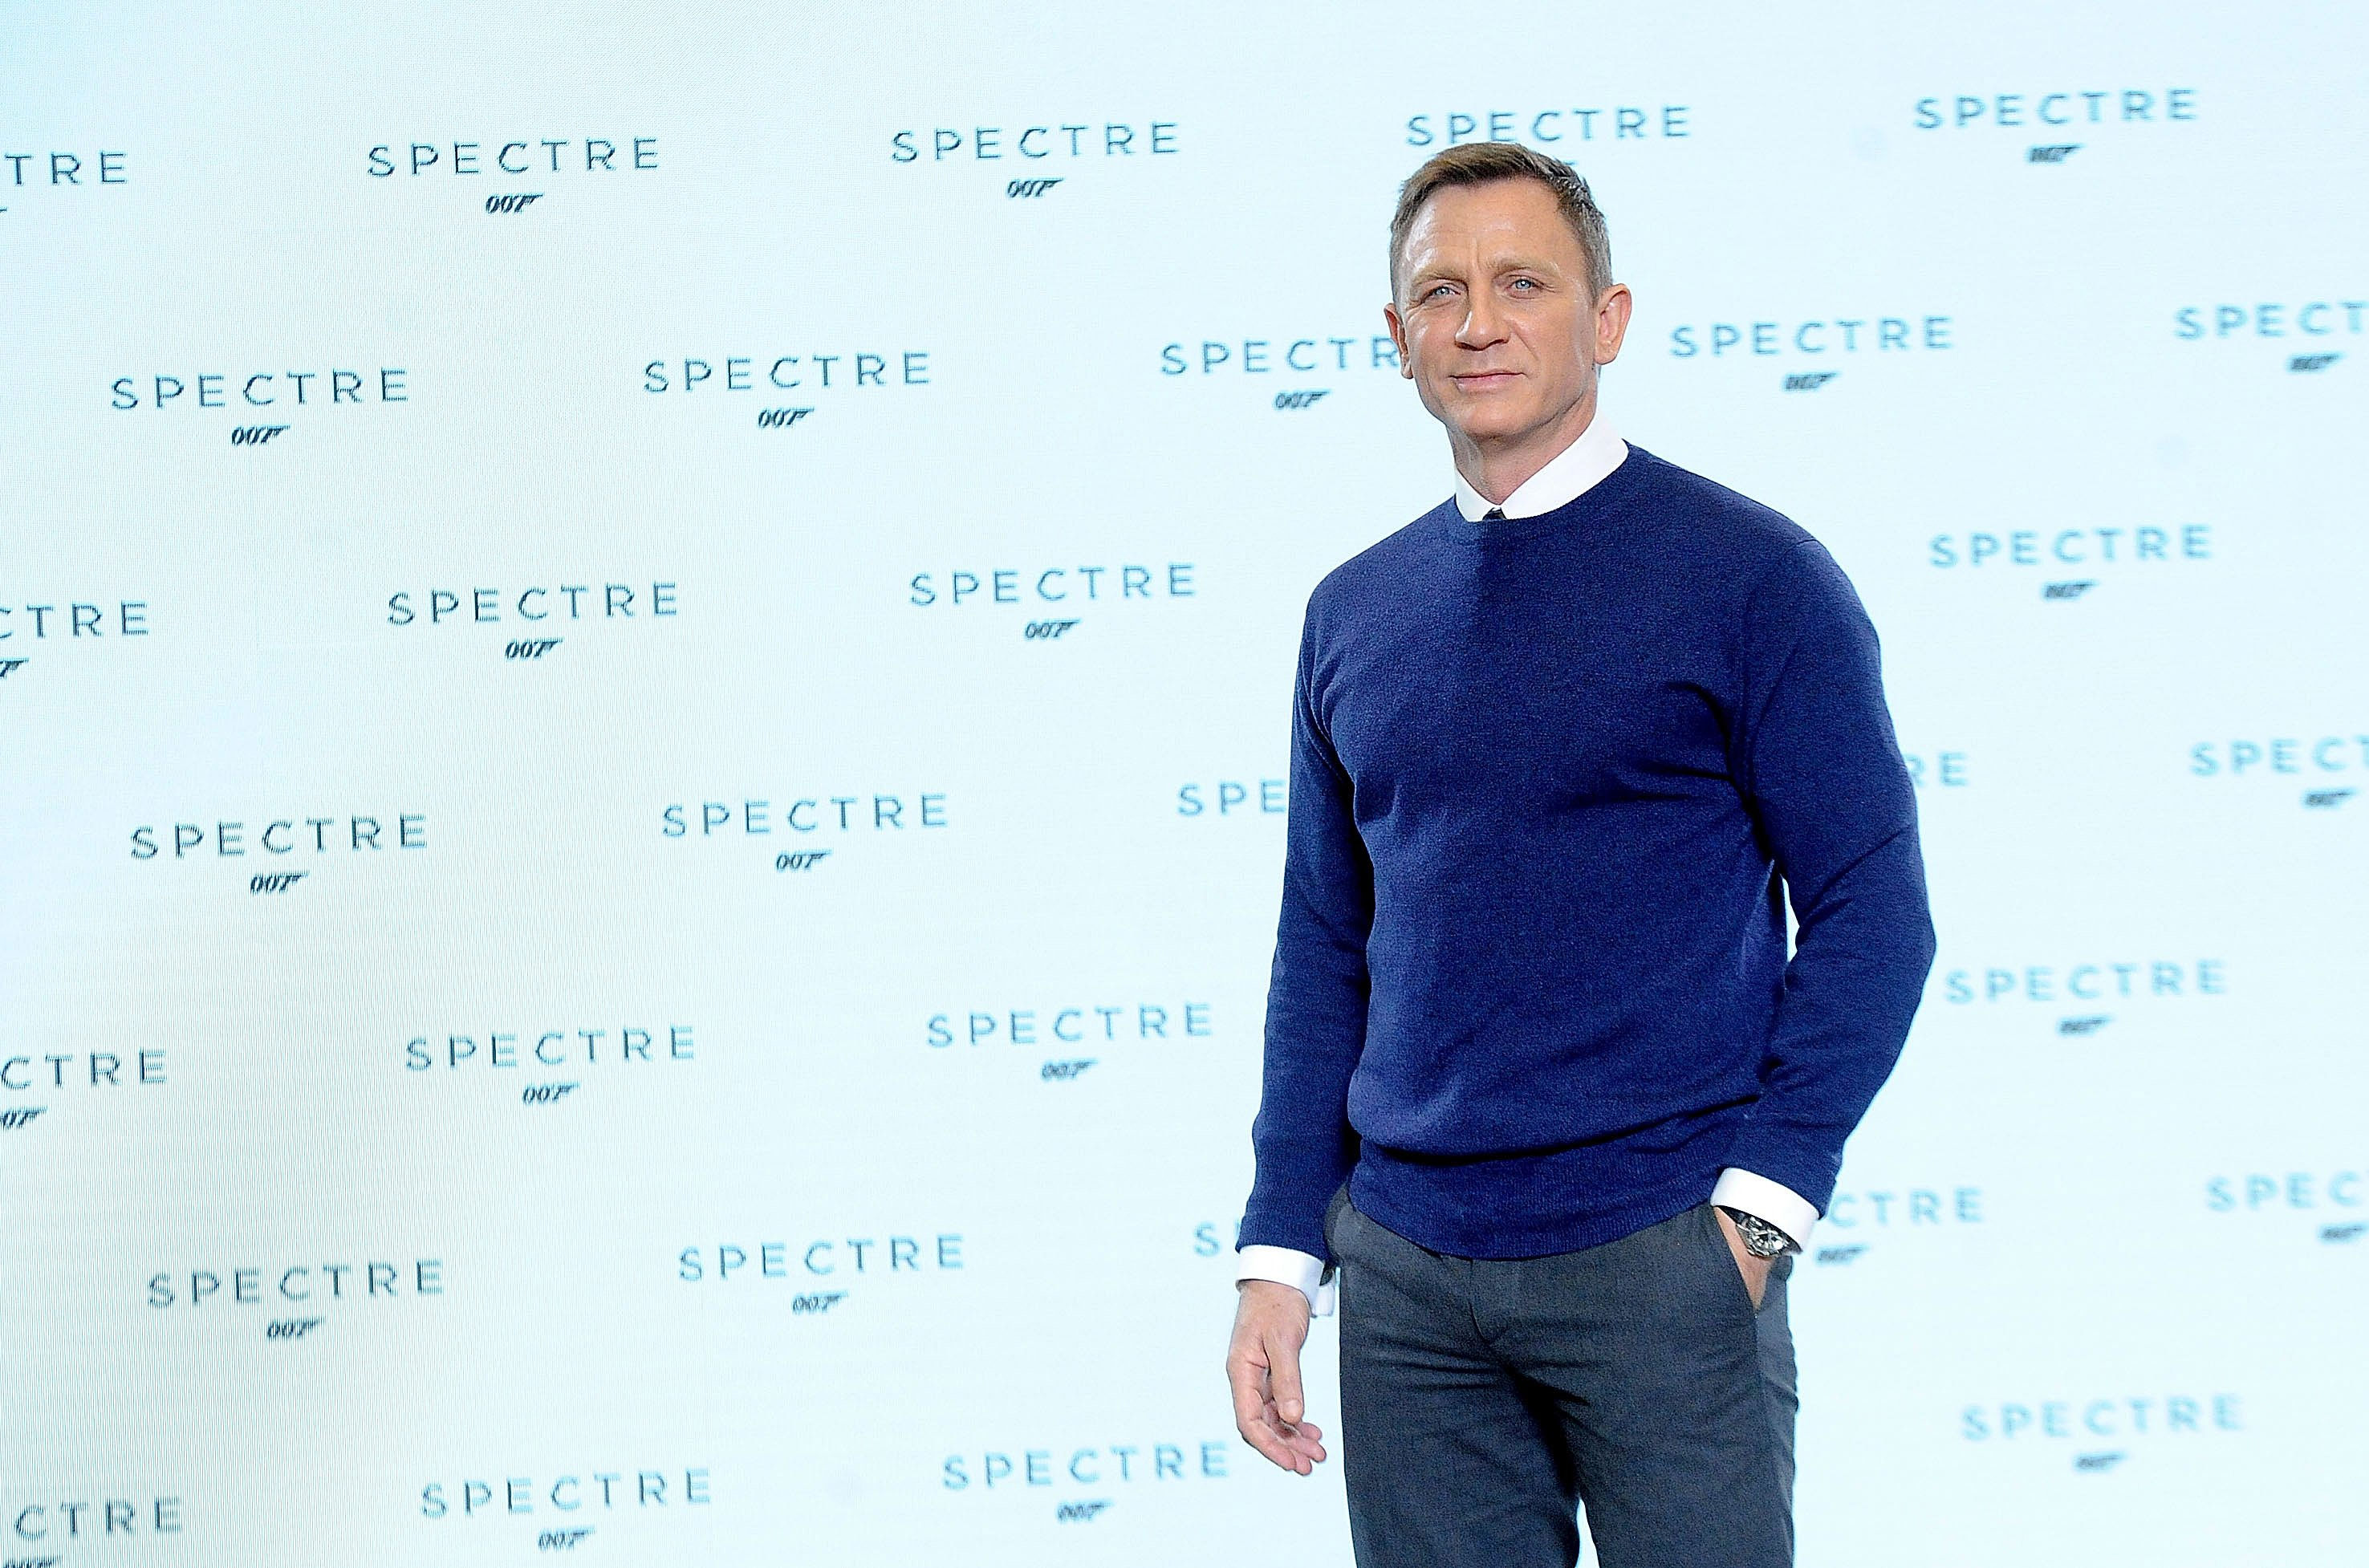 Image Source: Getty Images | Daniel at the Spectre event